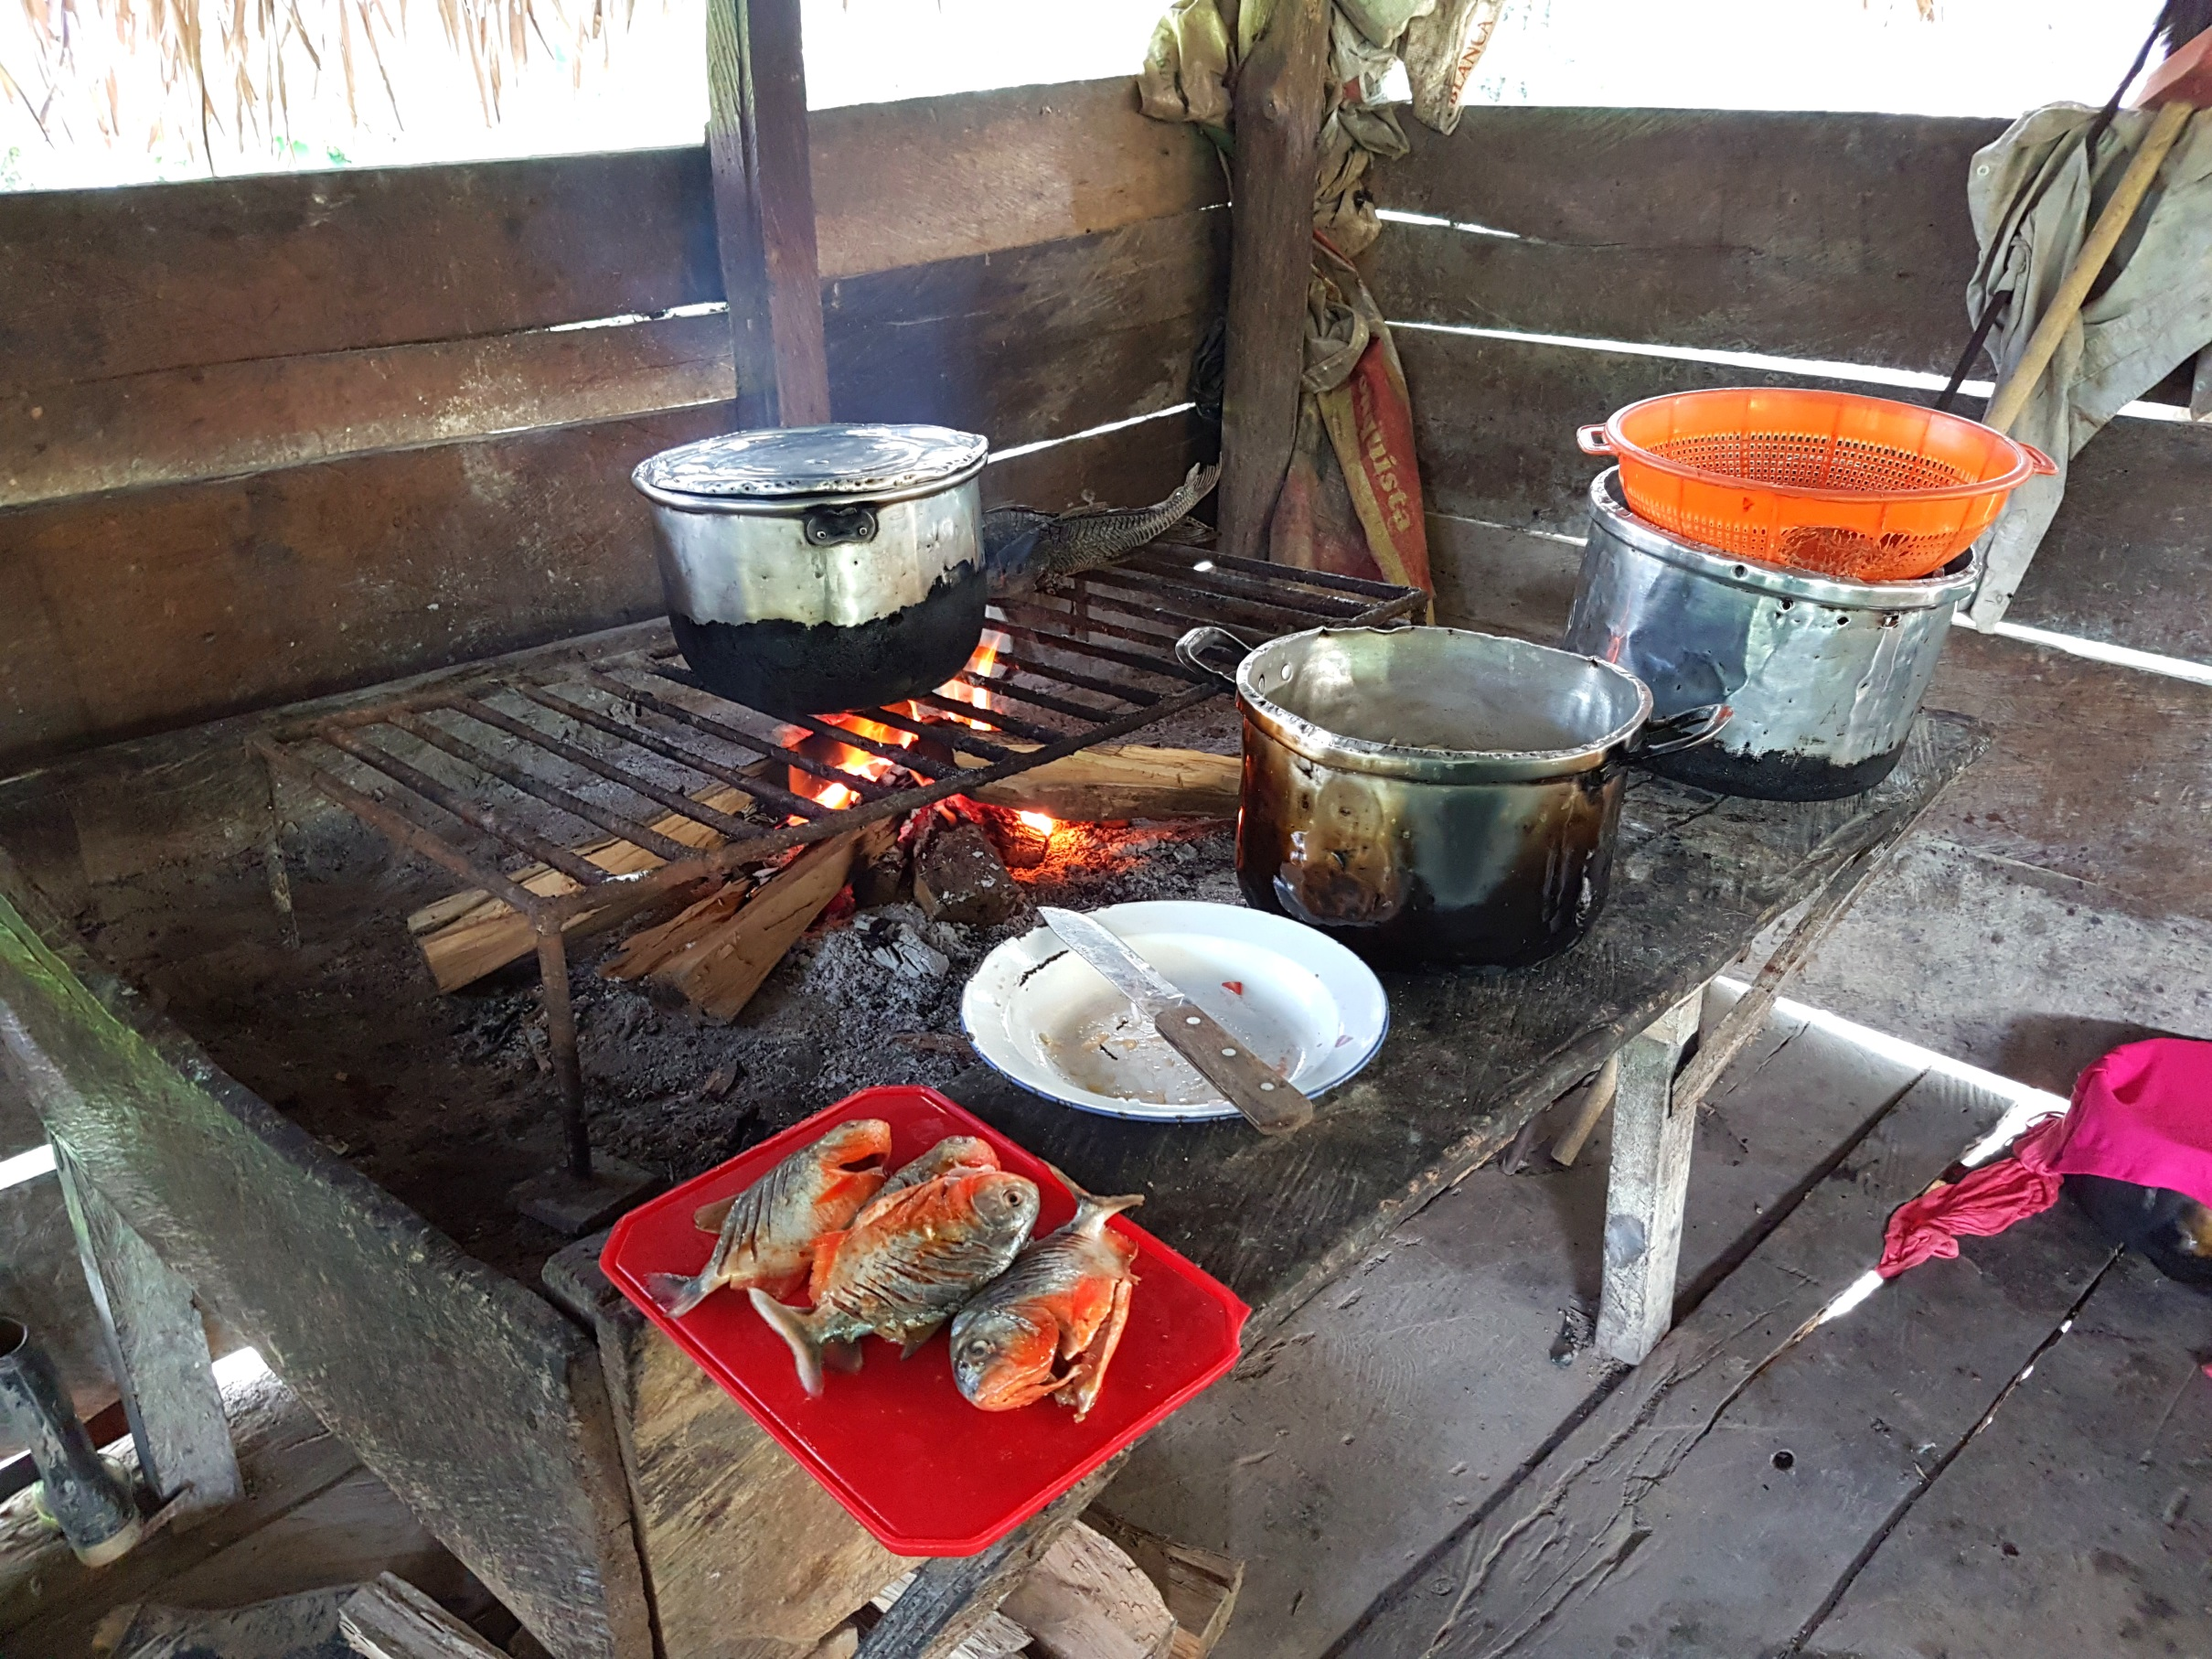 Our lunch cooking in one of the villagers kitchens.